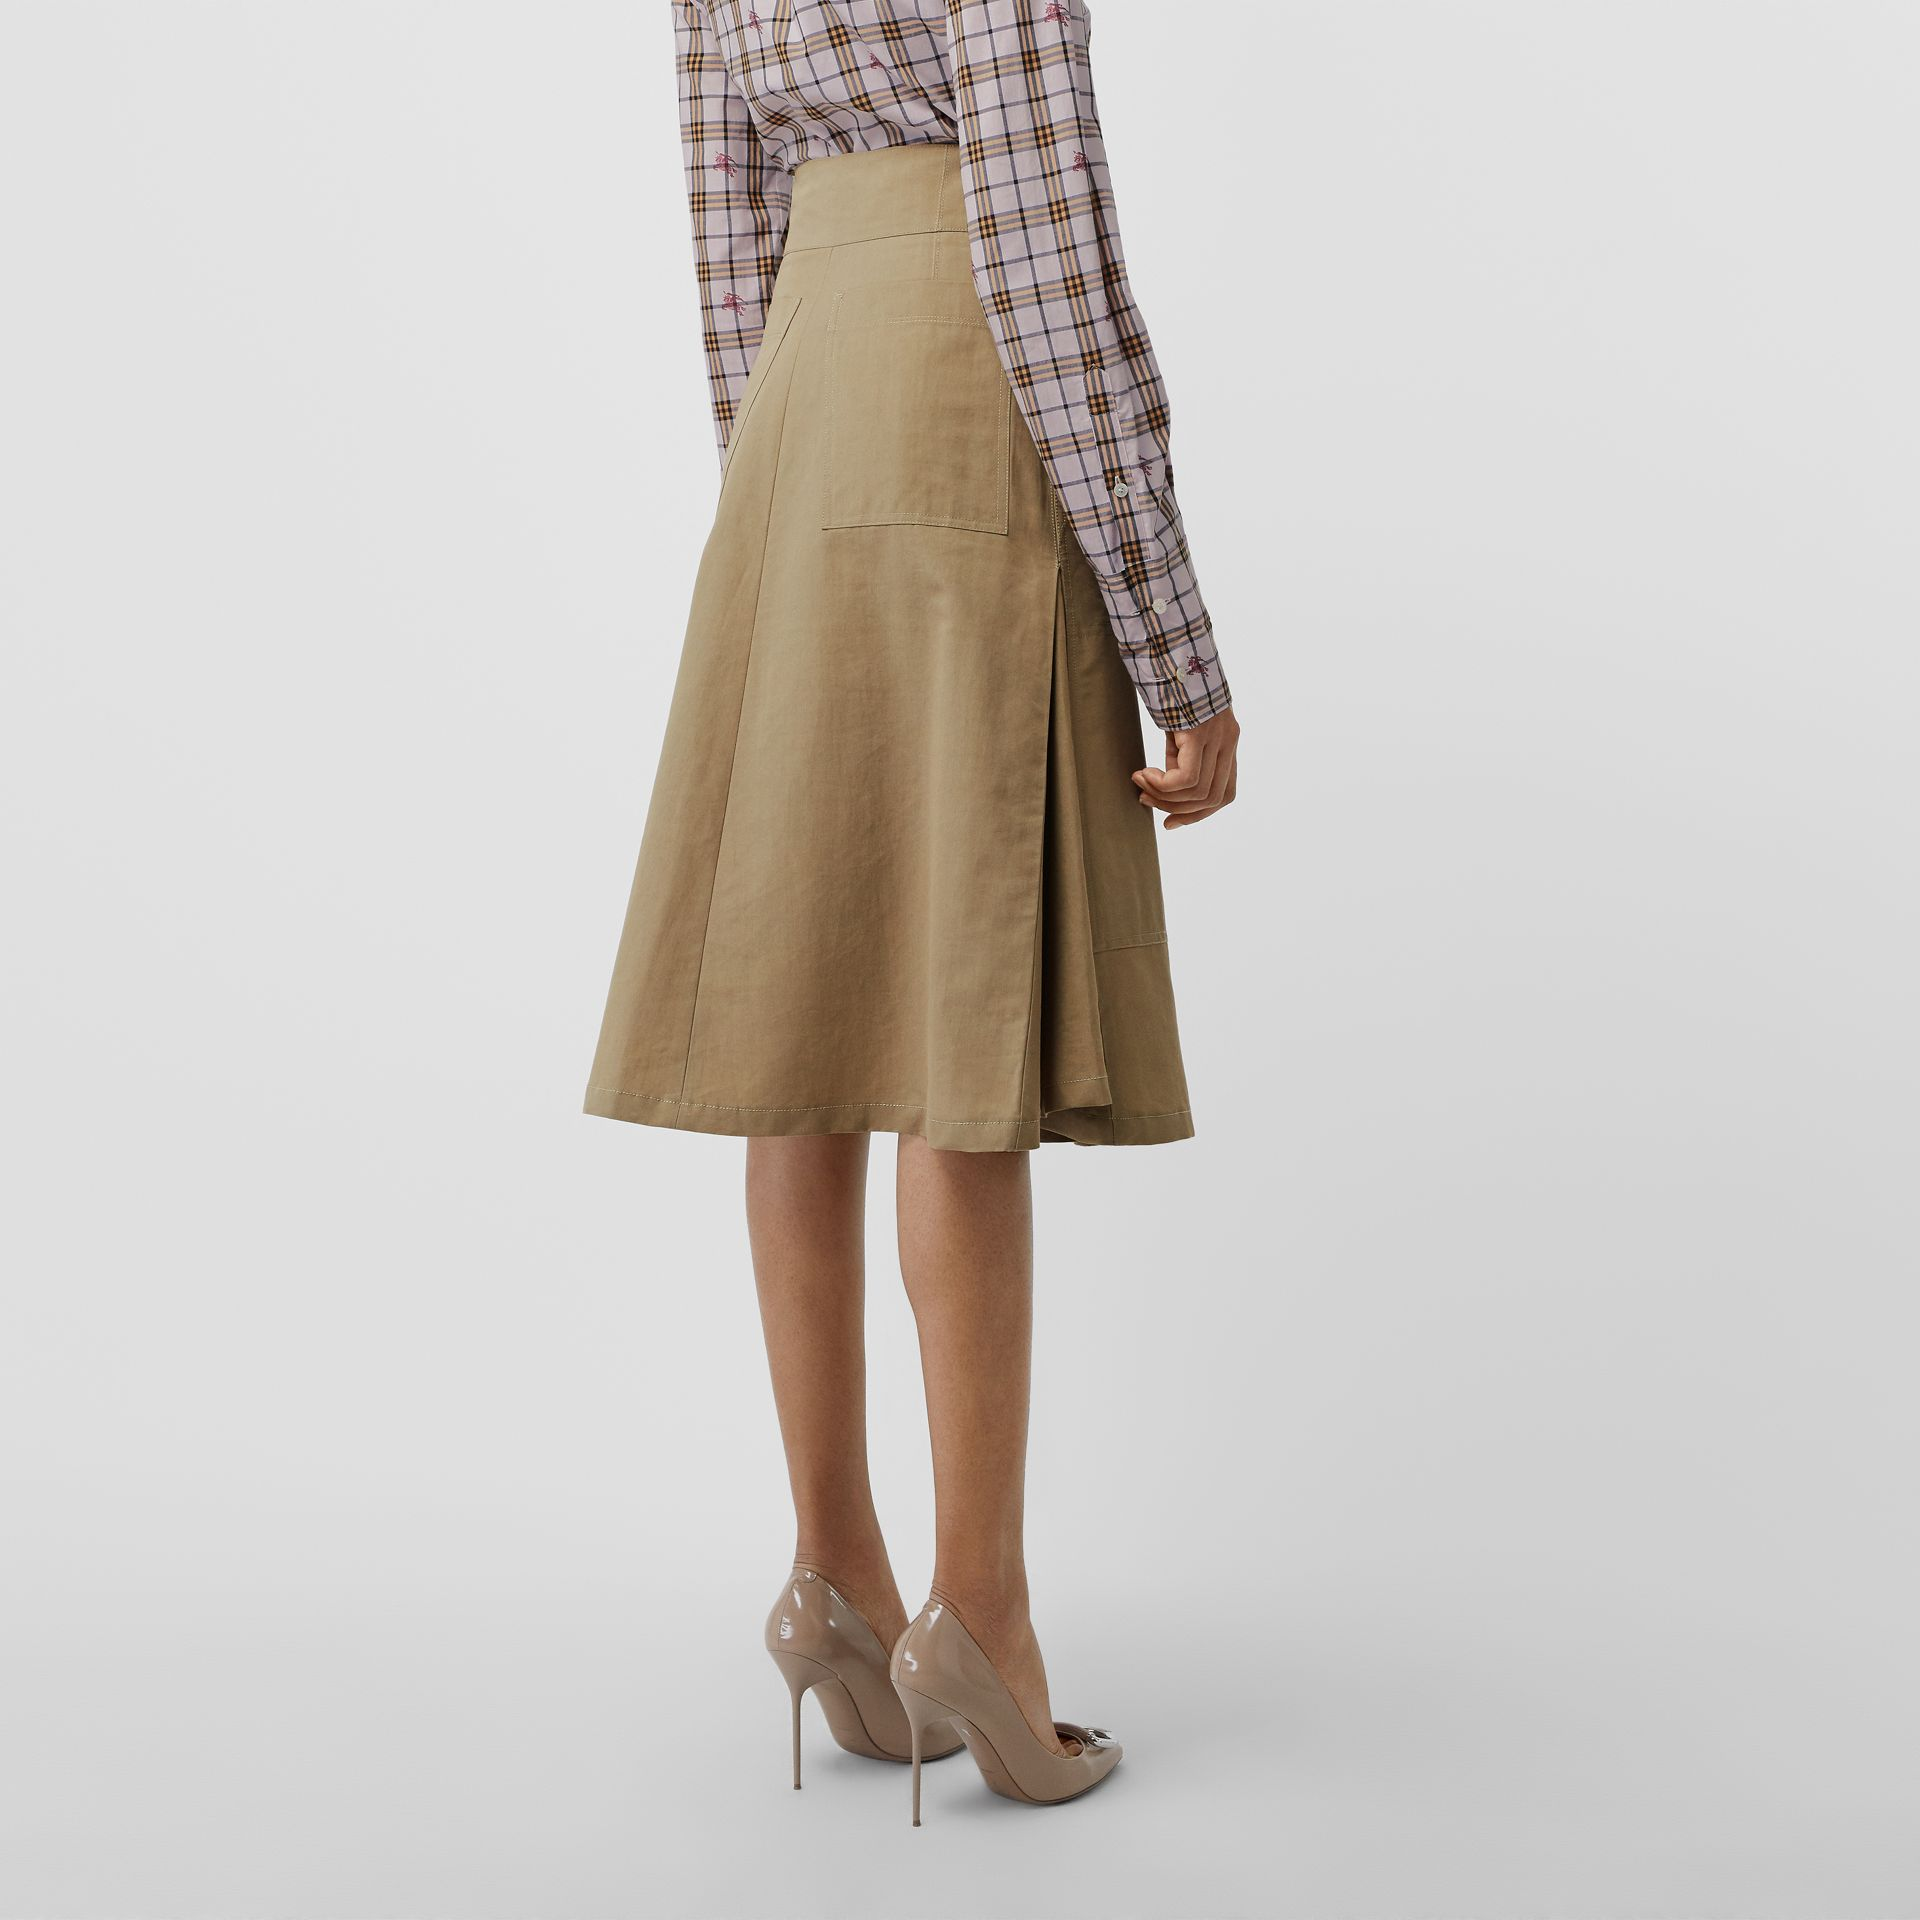 Cotton Silk High-waisted Skirt in Beige - Women | Burberry Canada - gallery image 1